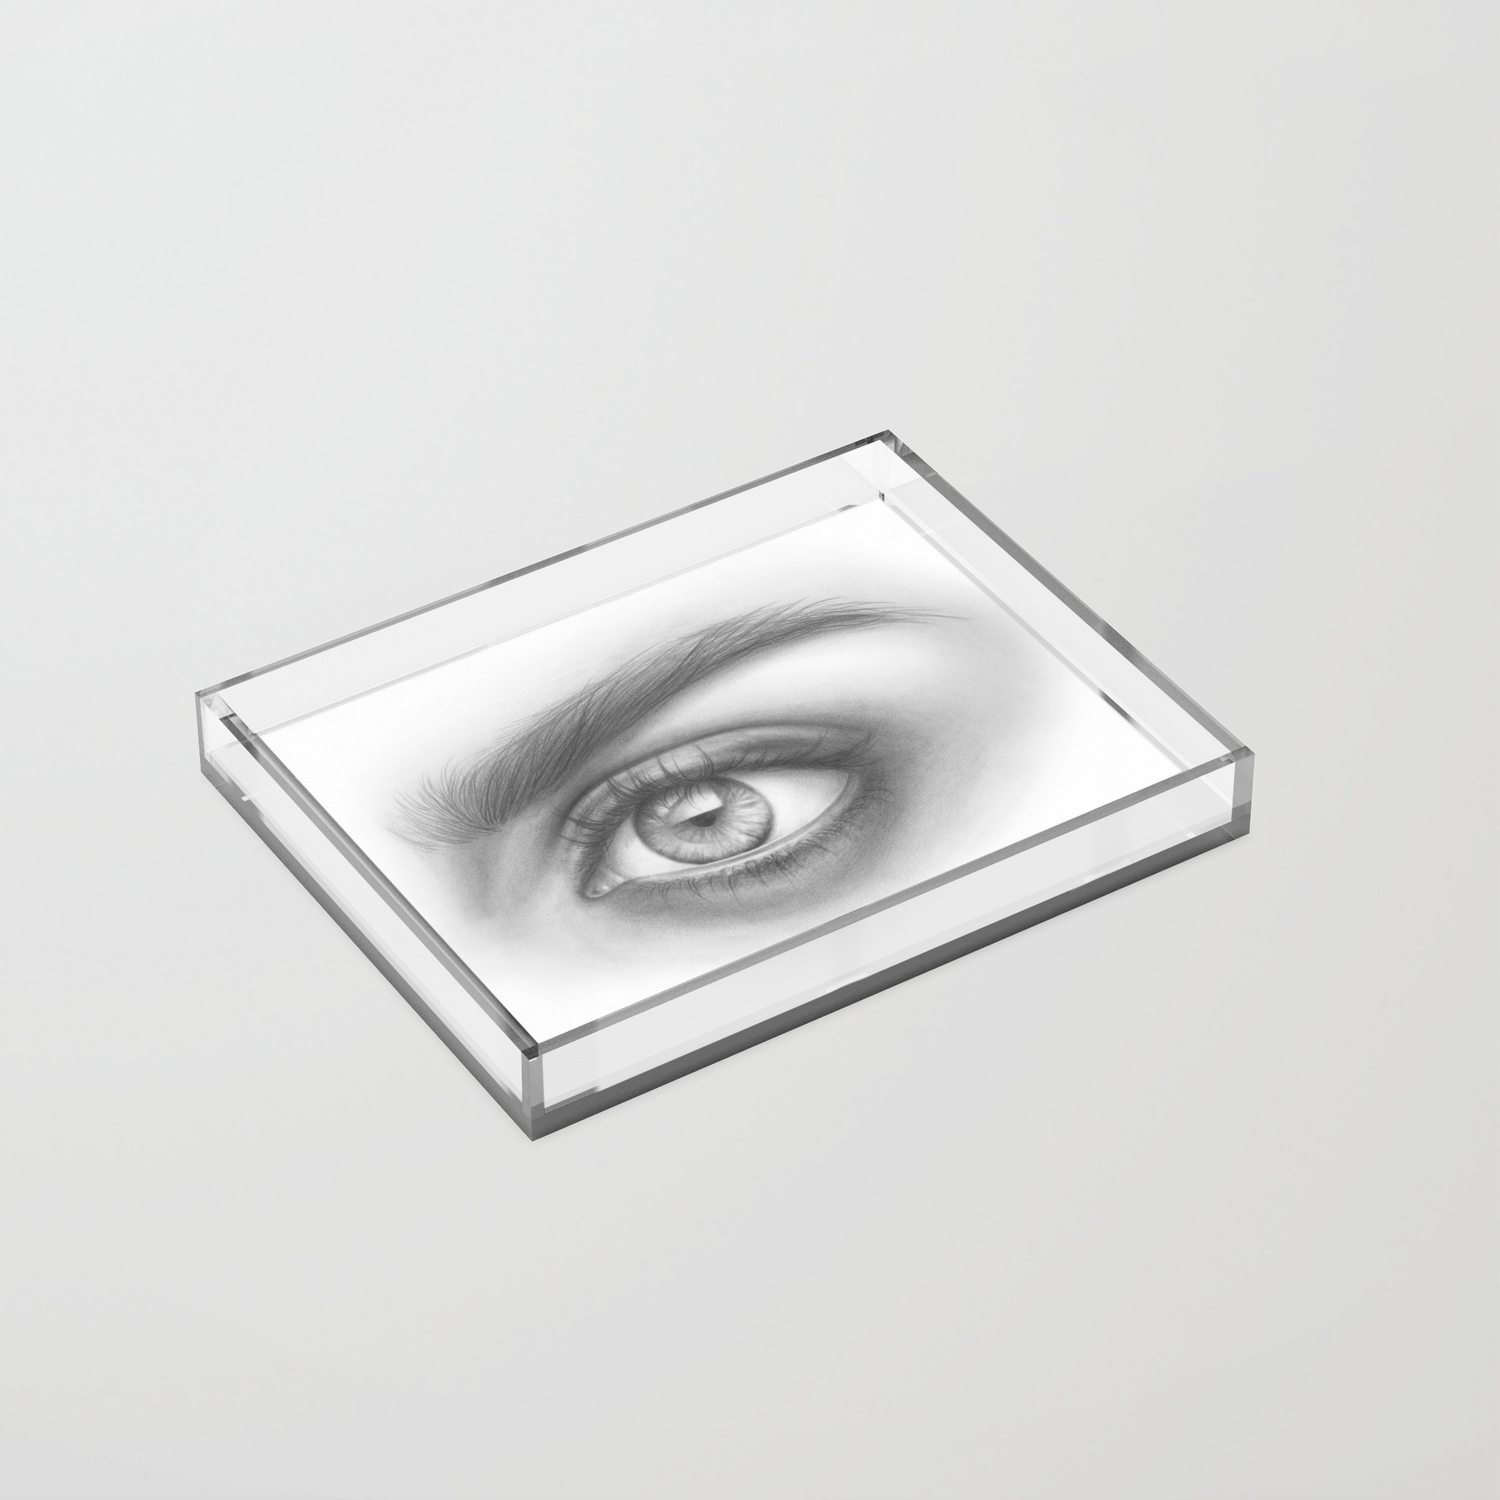 Eye art sexy girl beauty model woman face graphite drawing pencil black and white art acrylic tray by magdaopoka